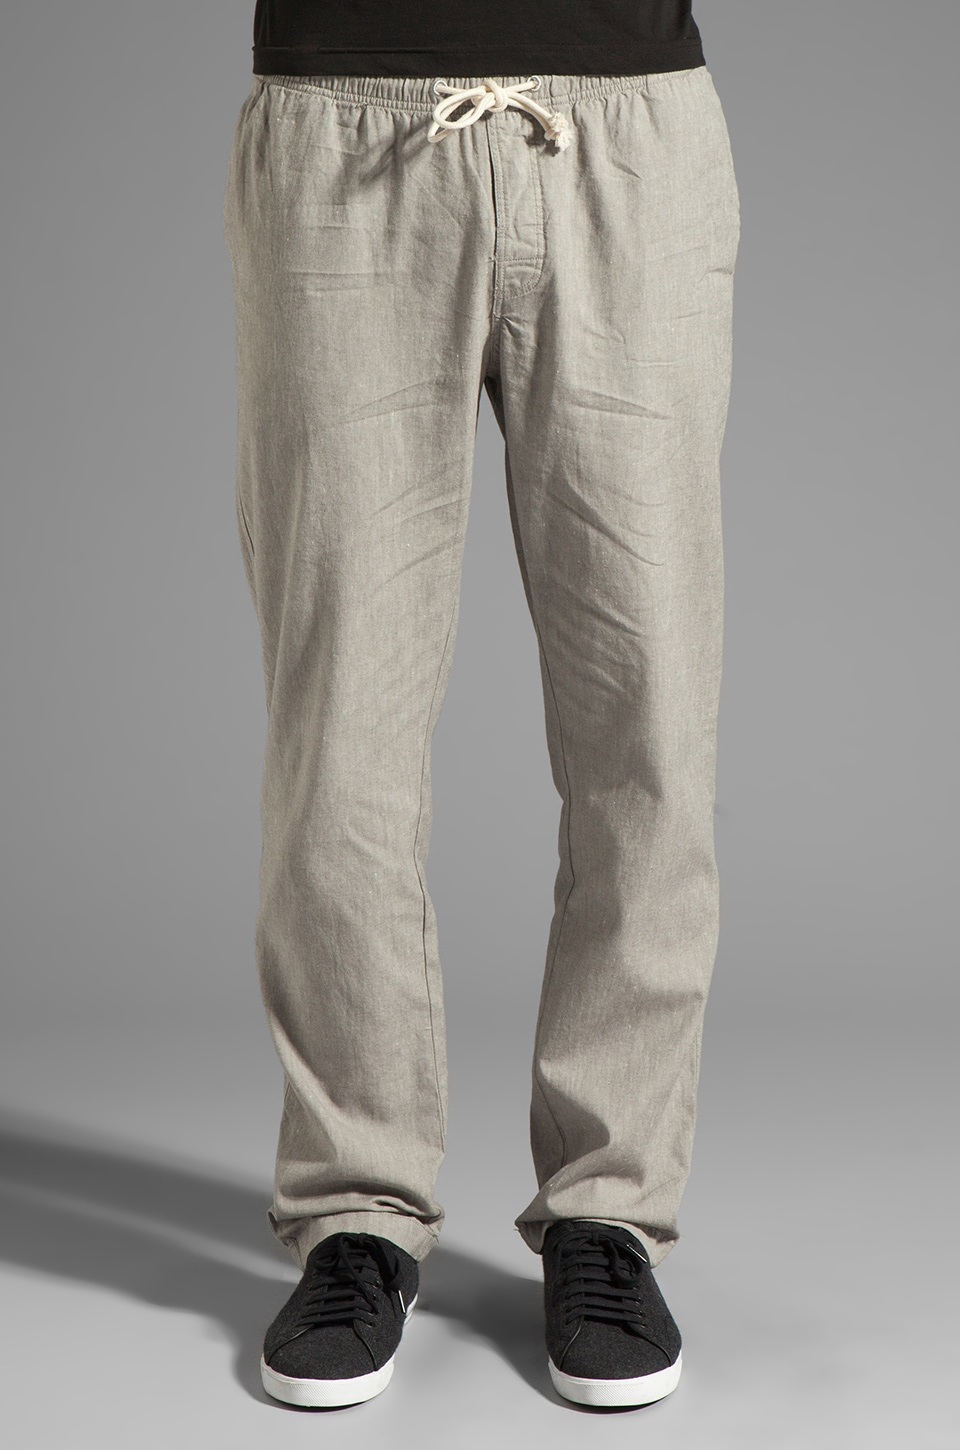 V.S.T.R Travel Pant in Charcoal Chambray